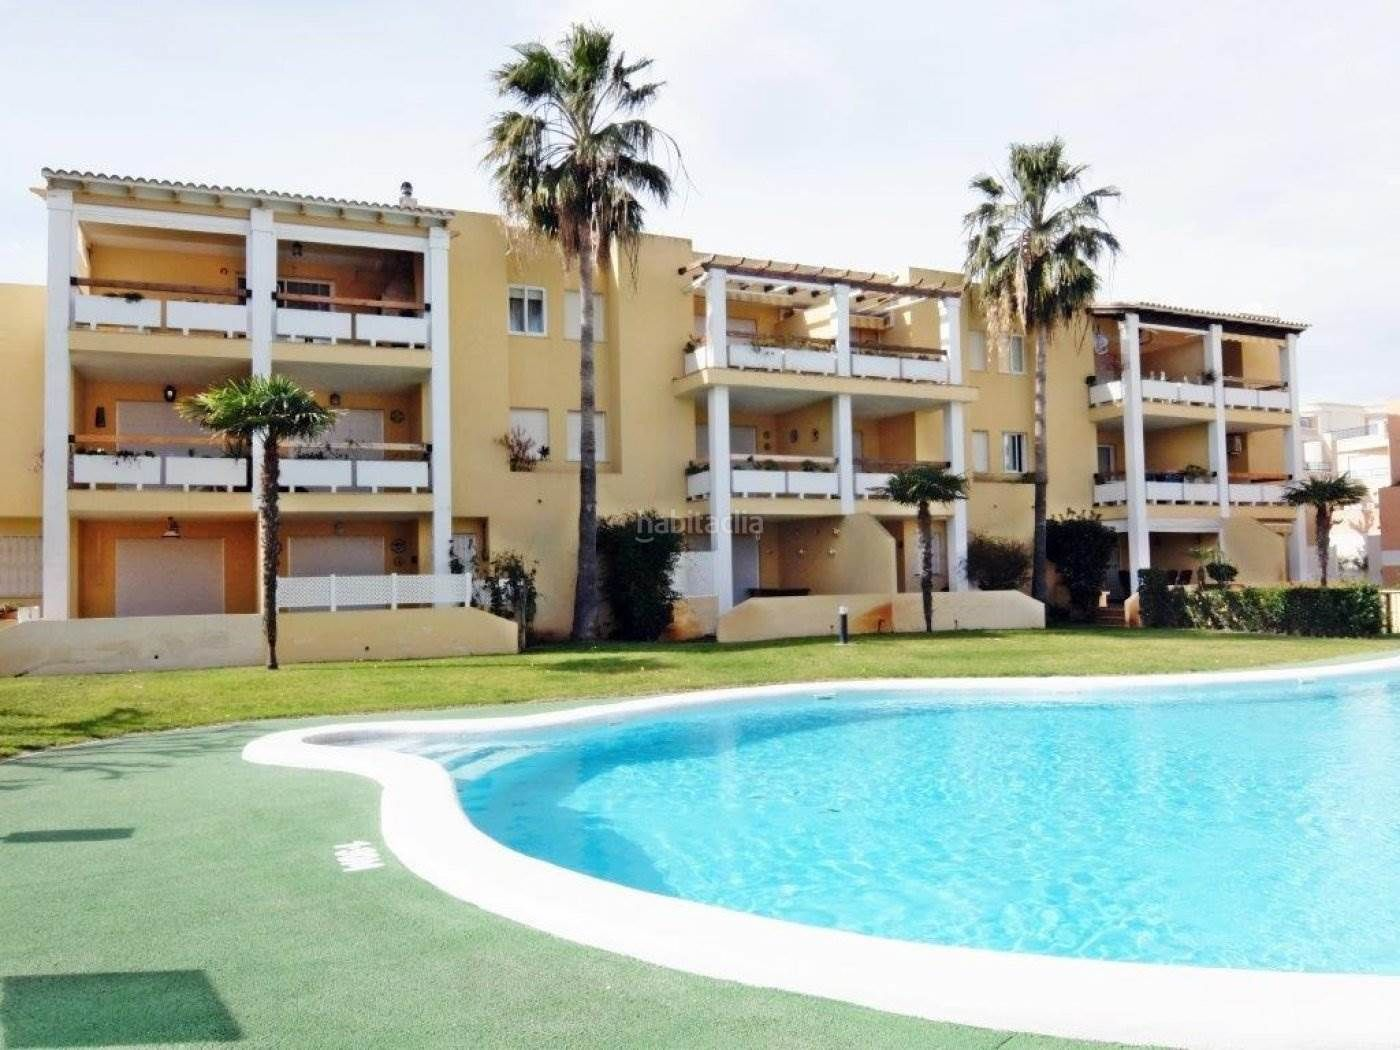 Rent Apartment in Xeraco. Apartamentos los juncos - playa xeraco